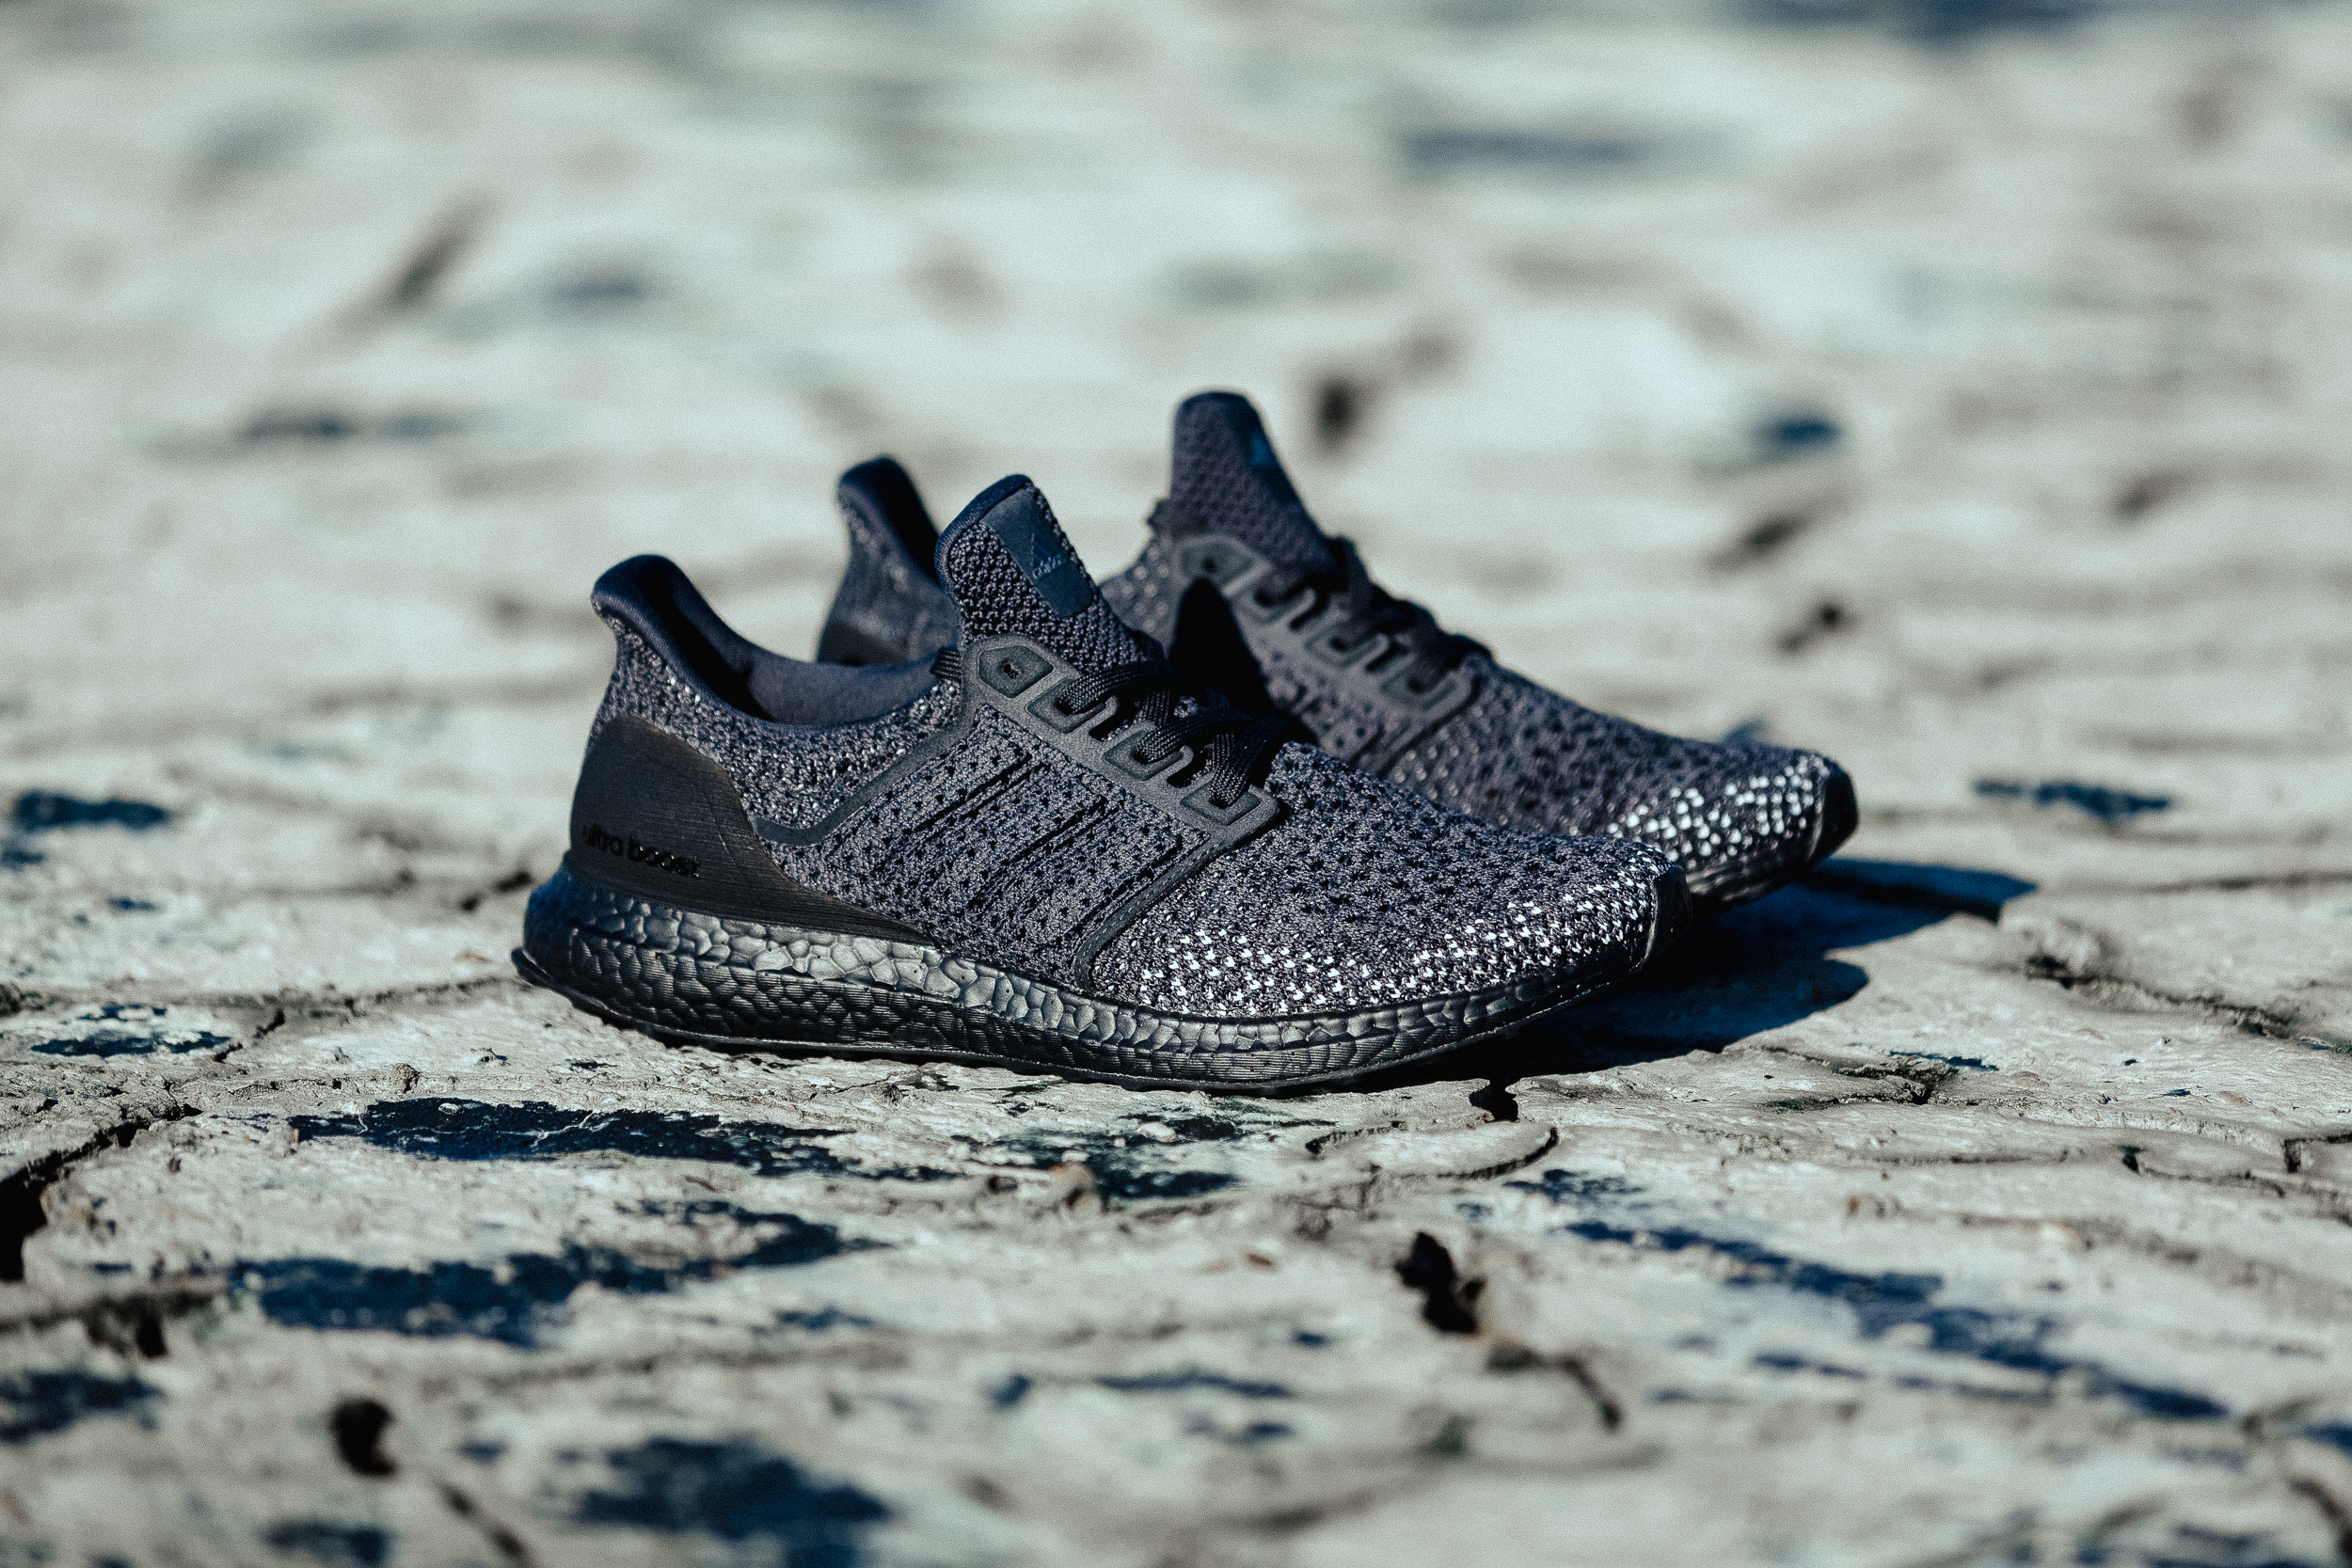 adidas Announces Early Release of Ultraboost Clima at Pop Up for Travelers on the Way to One of World's Largest Music Fe